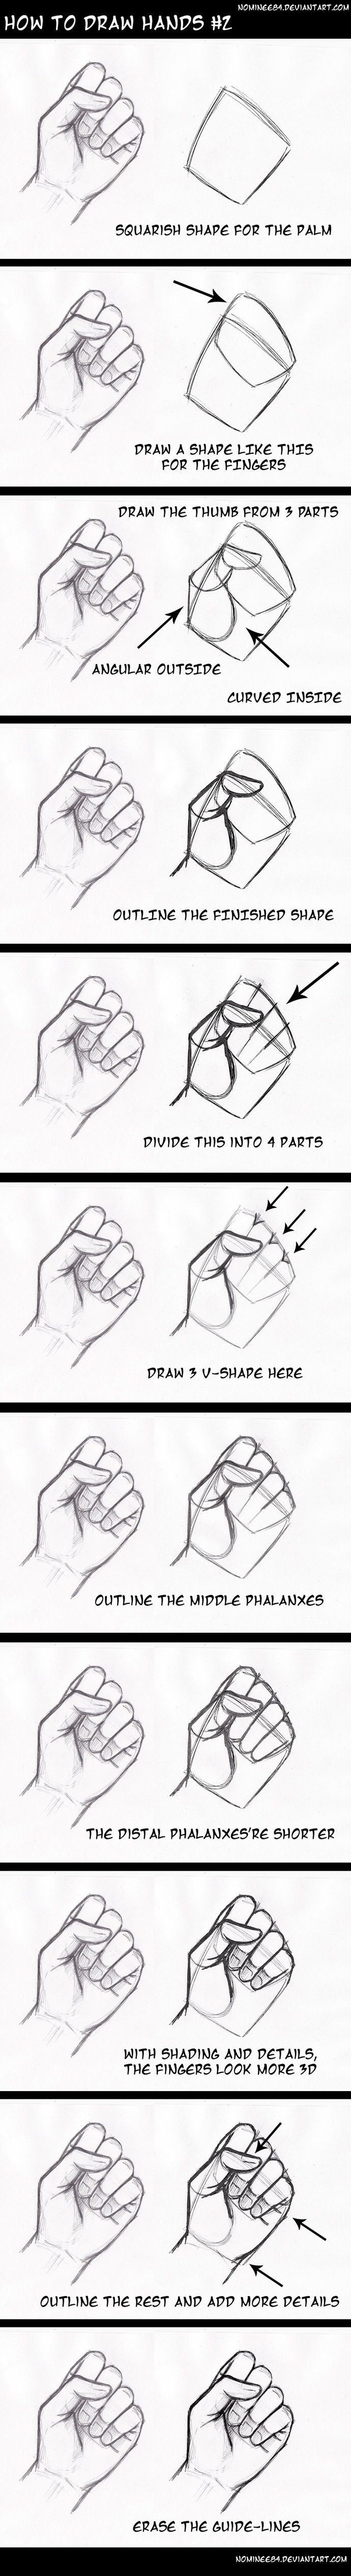 how to draw hands2 by nominee84 on DeviantArt